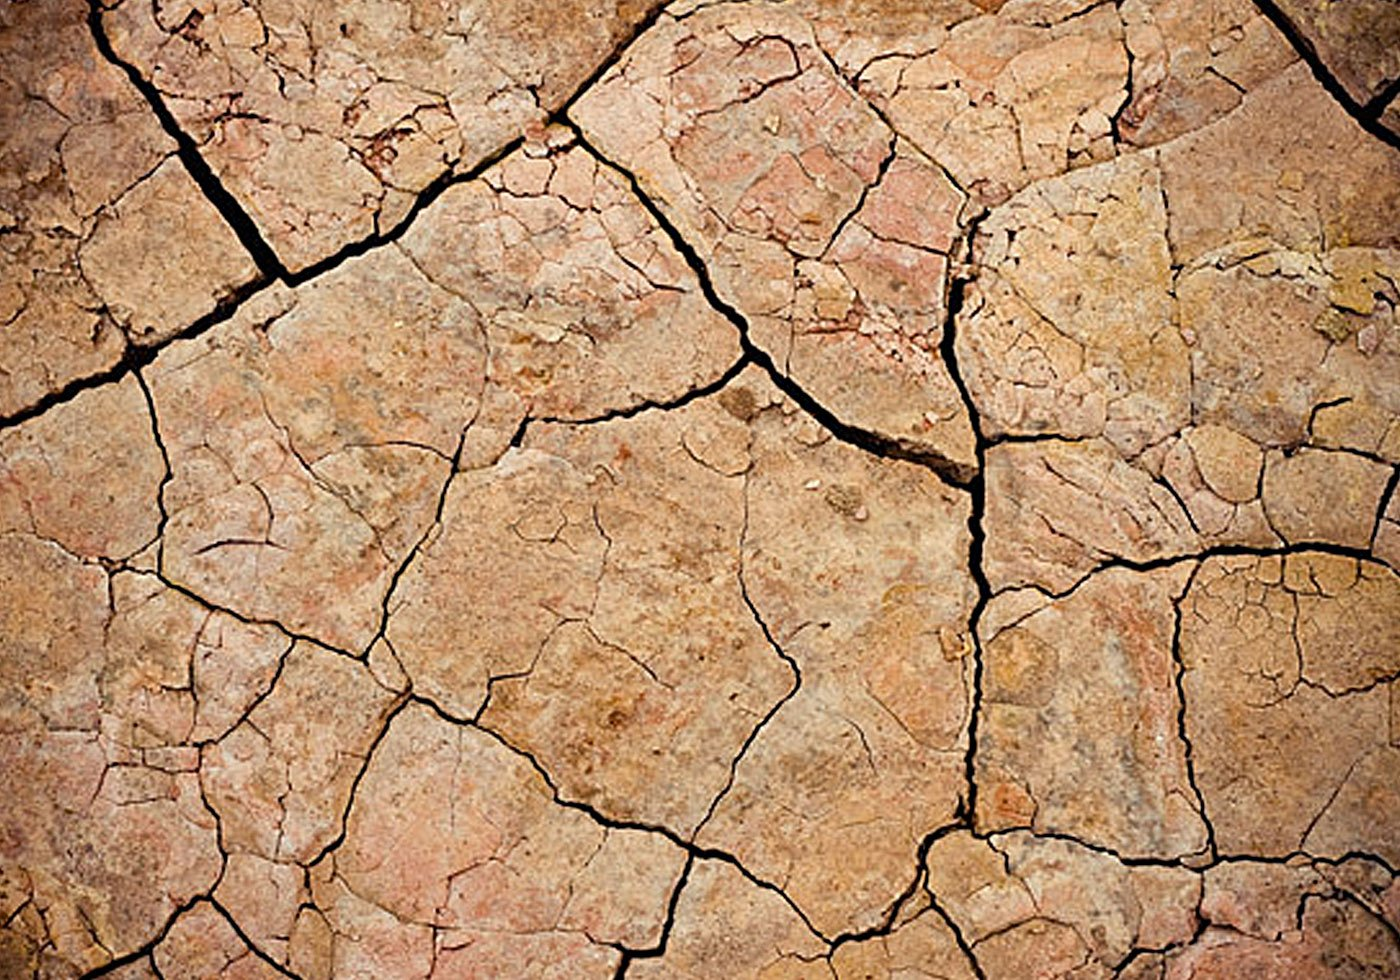 Cracked Mud Texture Free Photoshop Brushes At Brusheezy